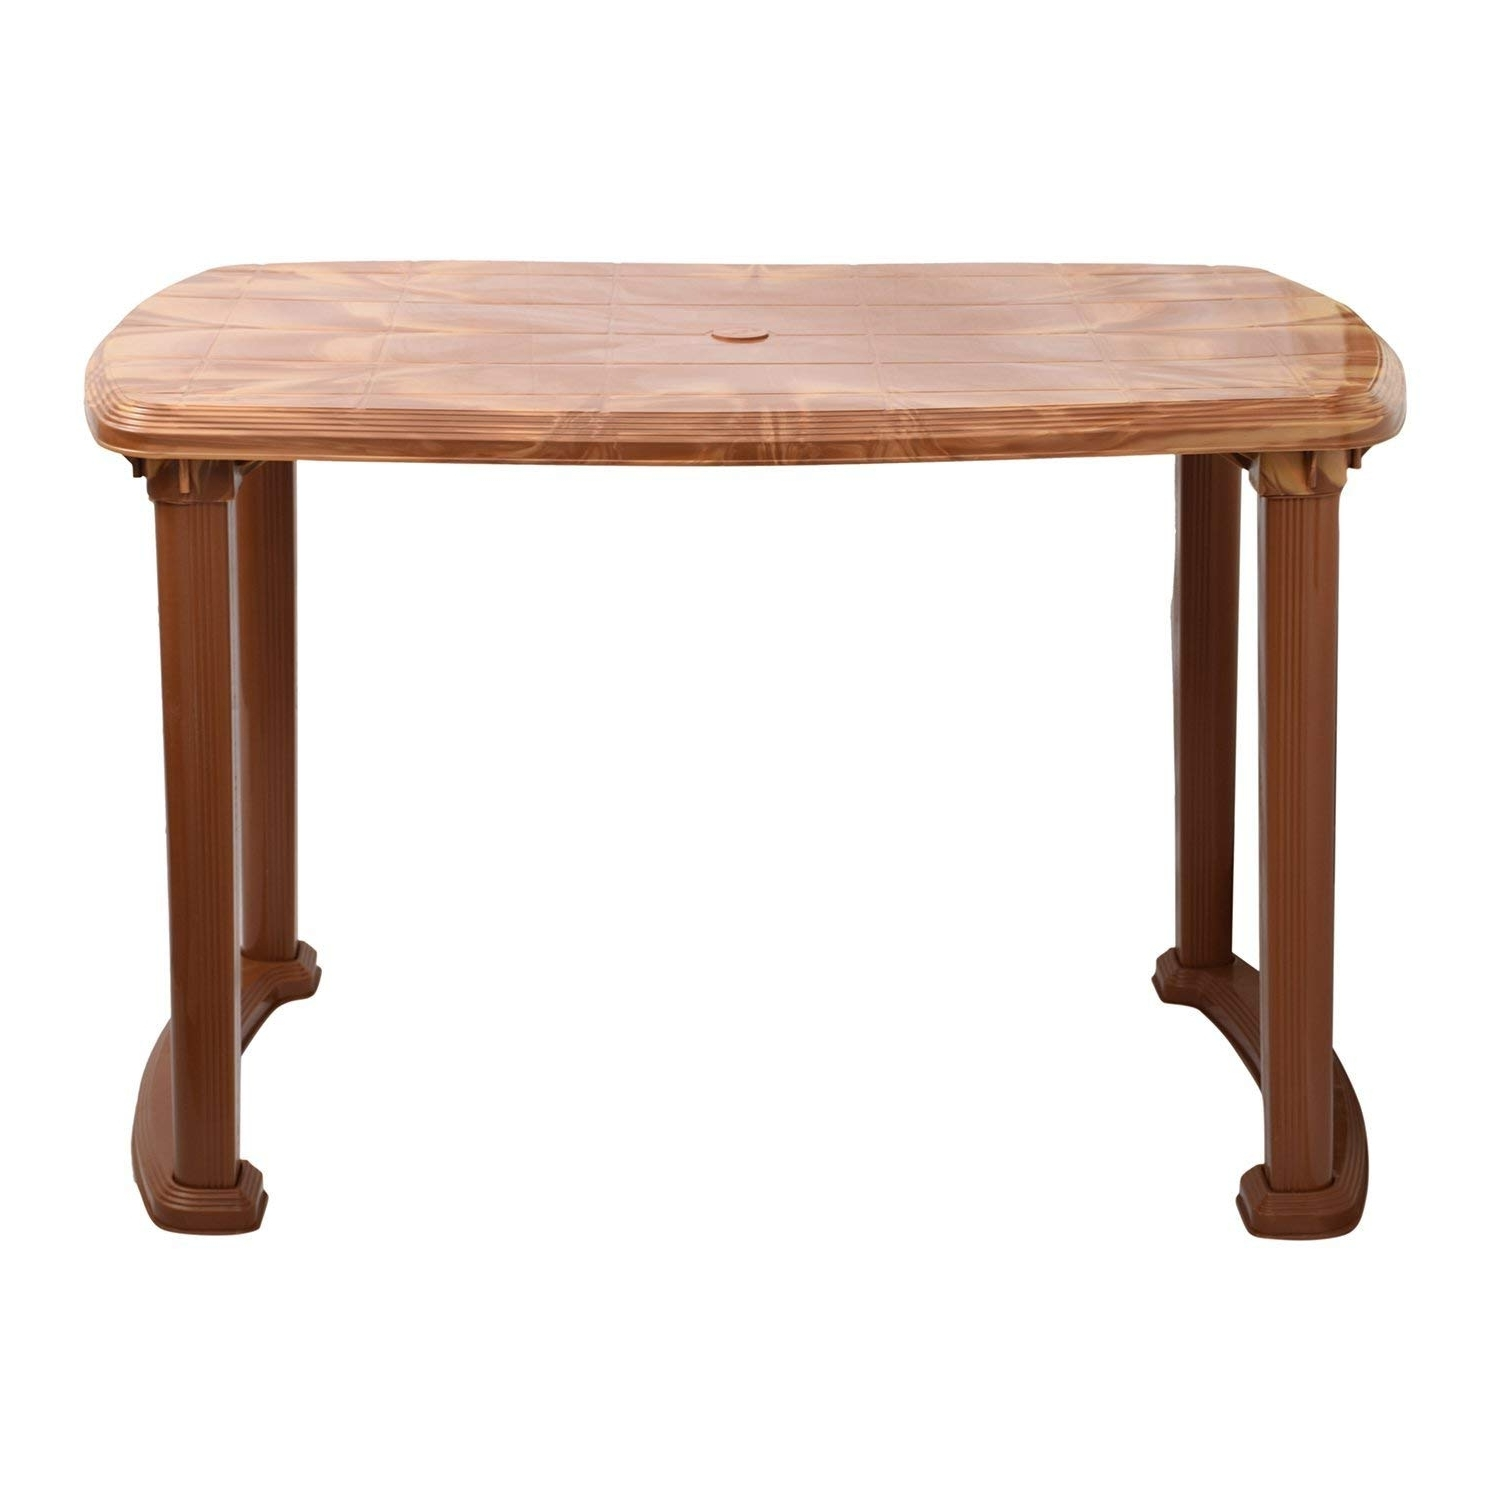 Circular Dining Tables For 4 With Current Dining Tables : Buy Dining Tables Online At Low Prices In India (View 16 of 25)